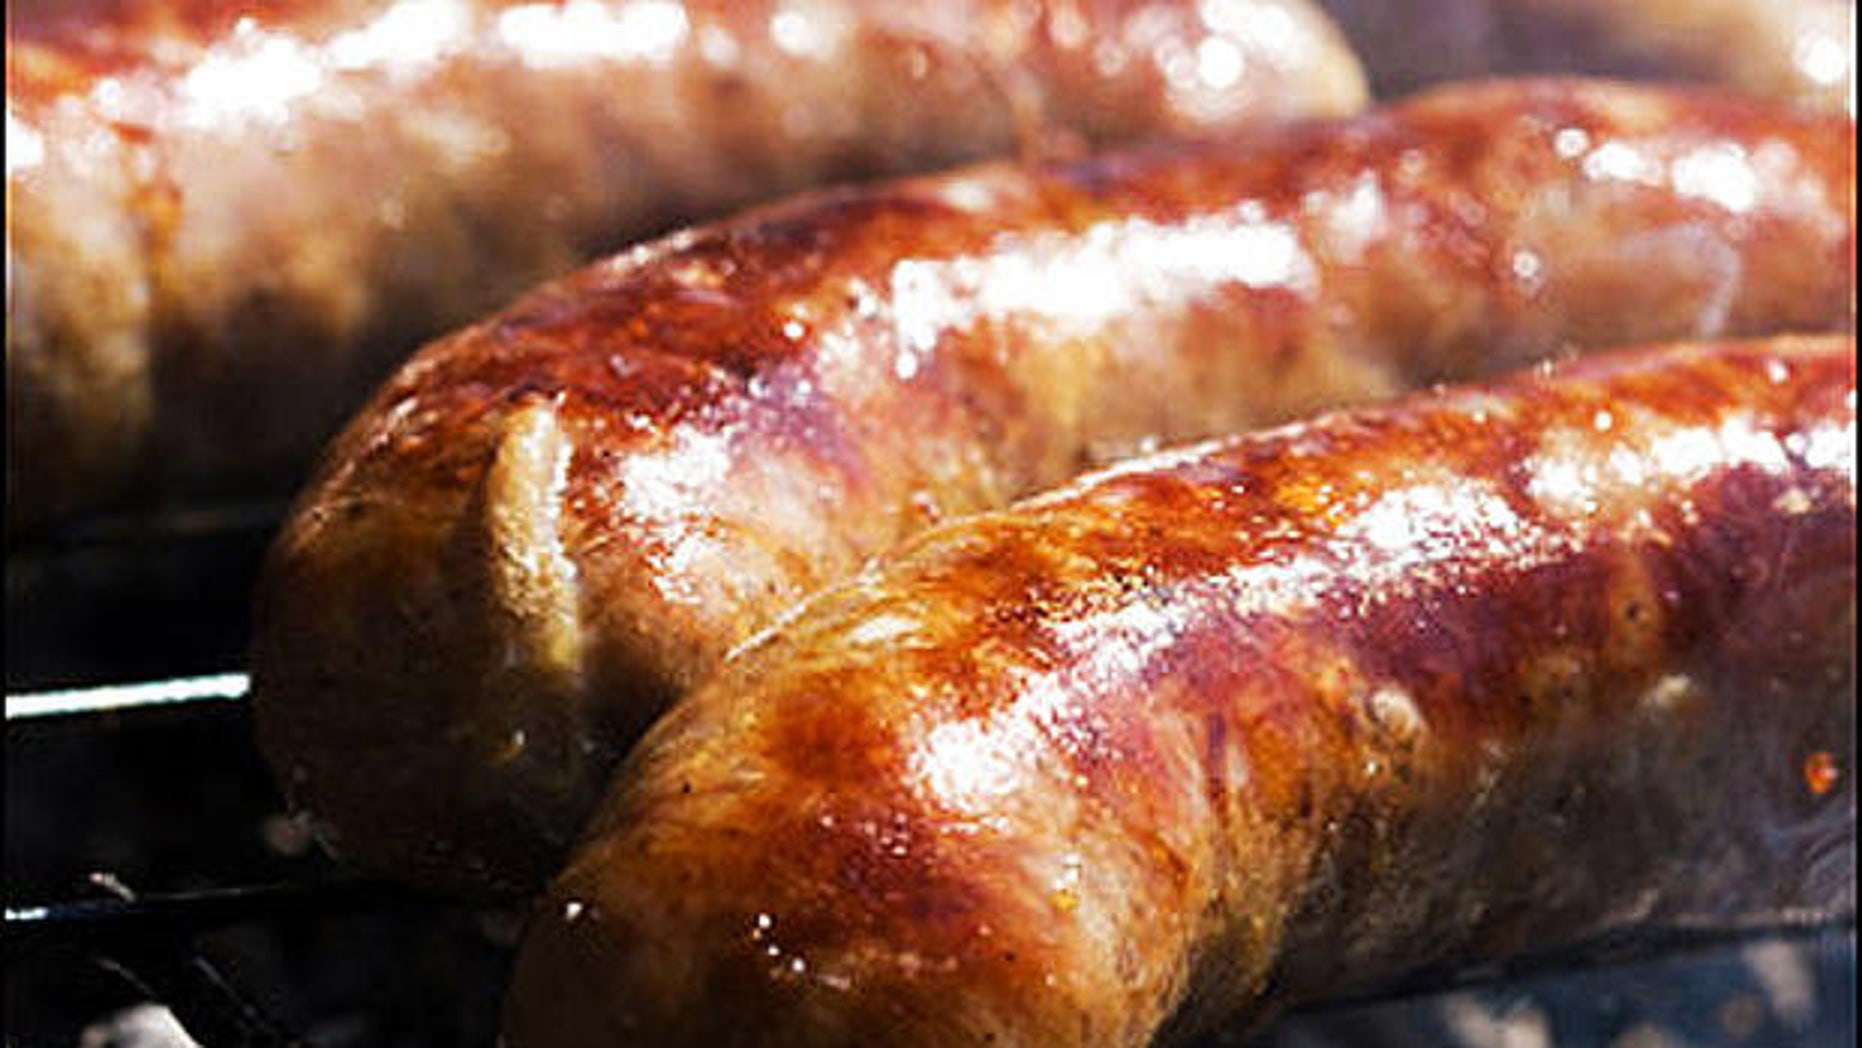 Twenty one German sausage makers have been fined millions of dollars for price-fixing.